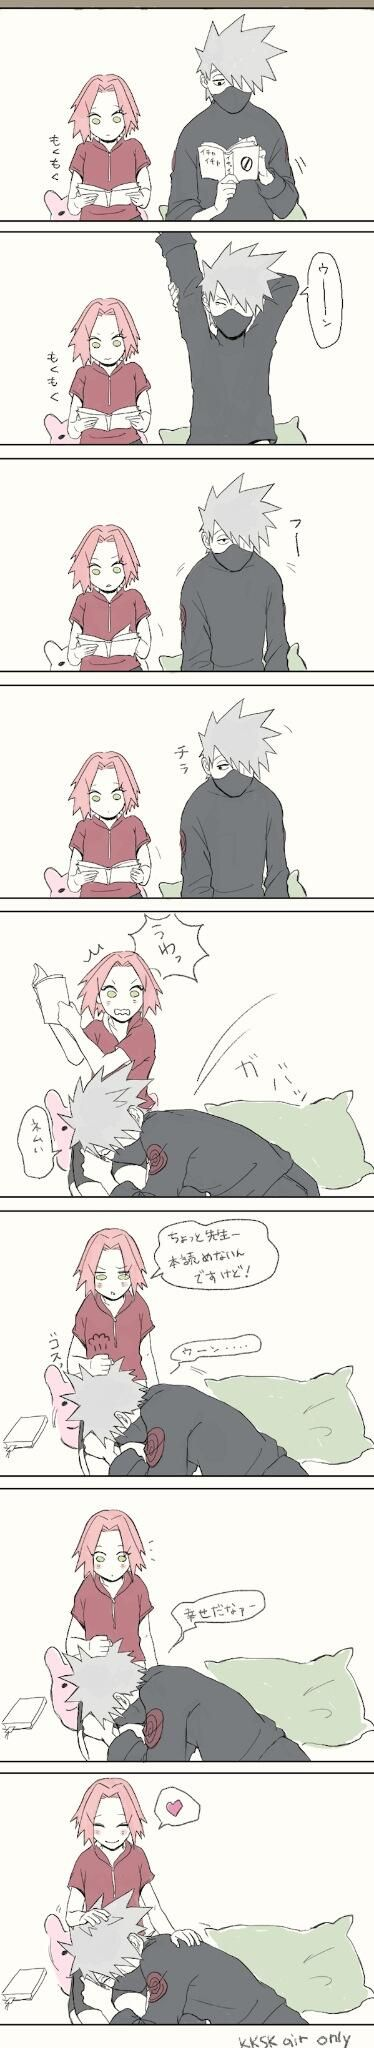 Kakashi and Sakura. I've never shipped these two but I thought this was cute. Couldn't help myself.